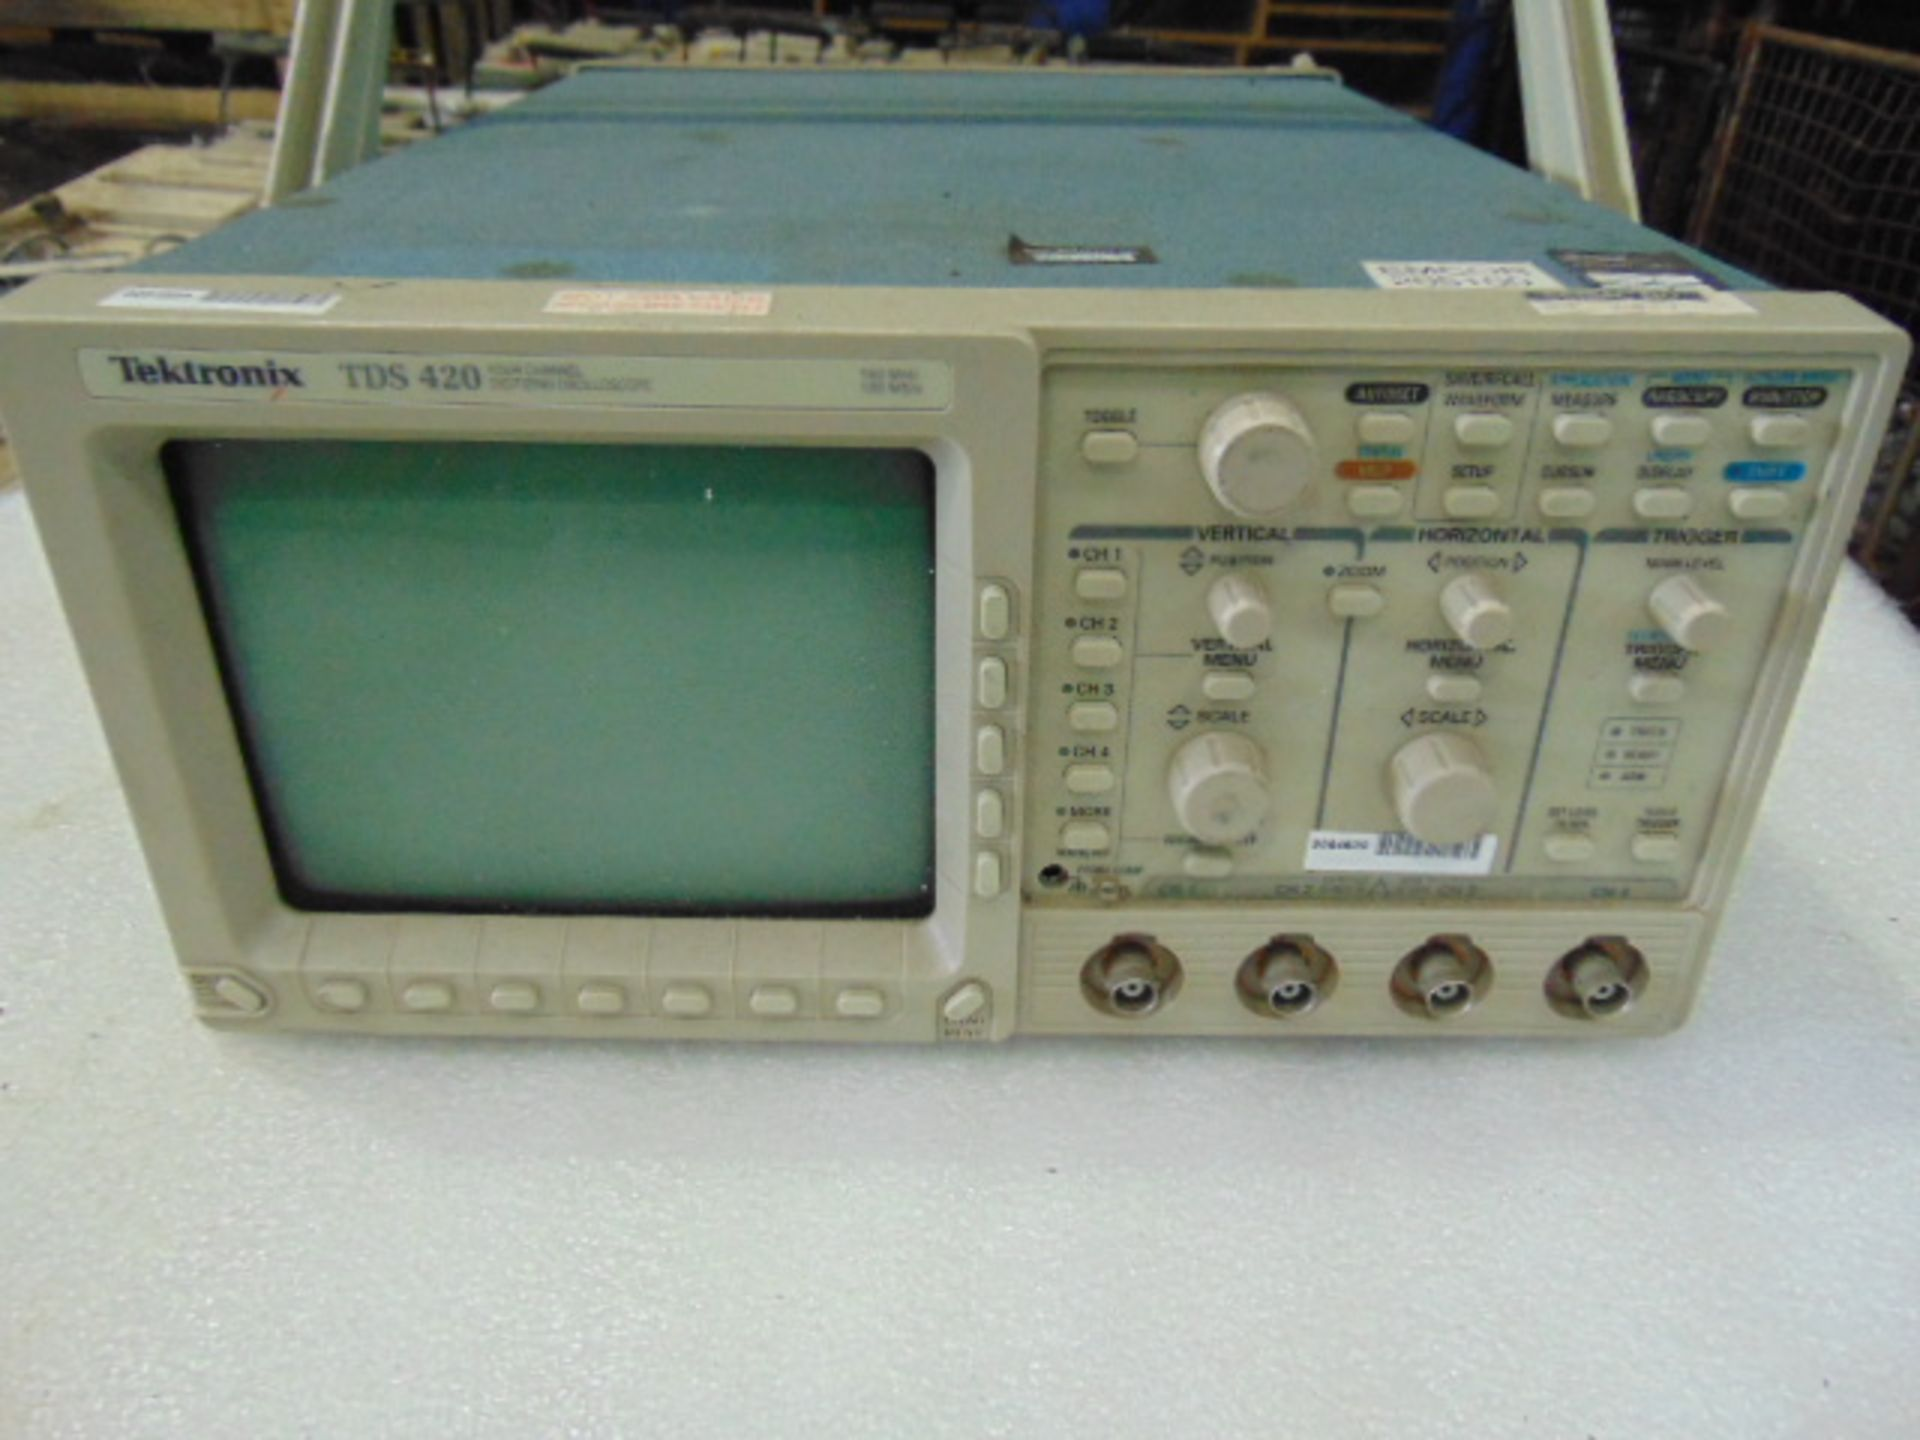 Lot 27330 - Tectronix TDS 420 Four Channel Digitizing Oscilloscope